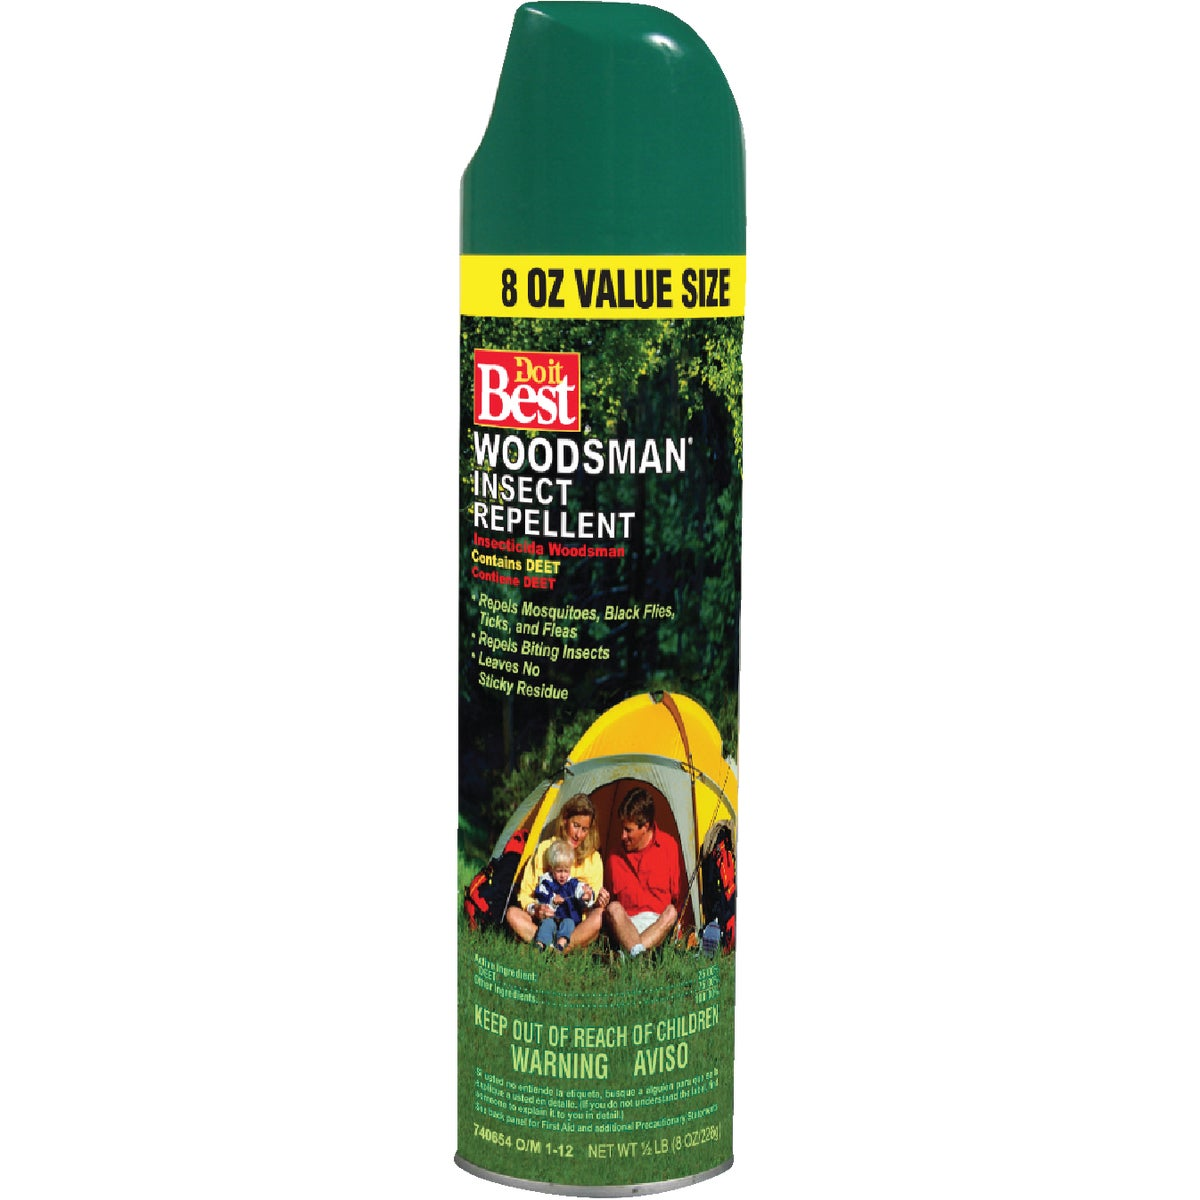 8OZ 25% INSECT REPELLENT - 740654 by Maid Brands Inc